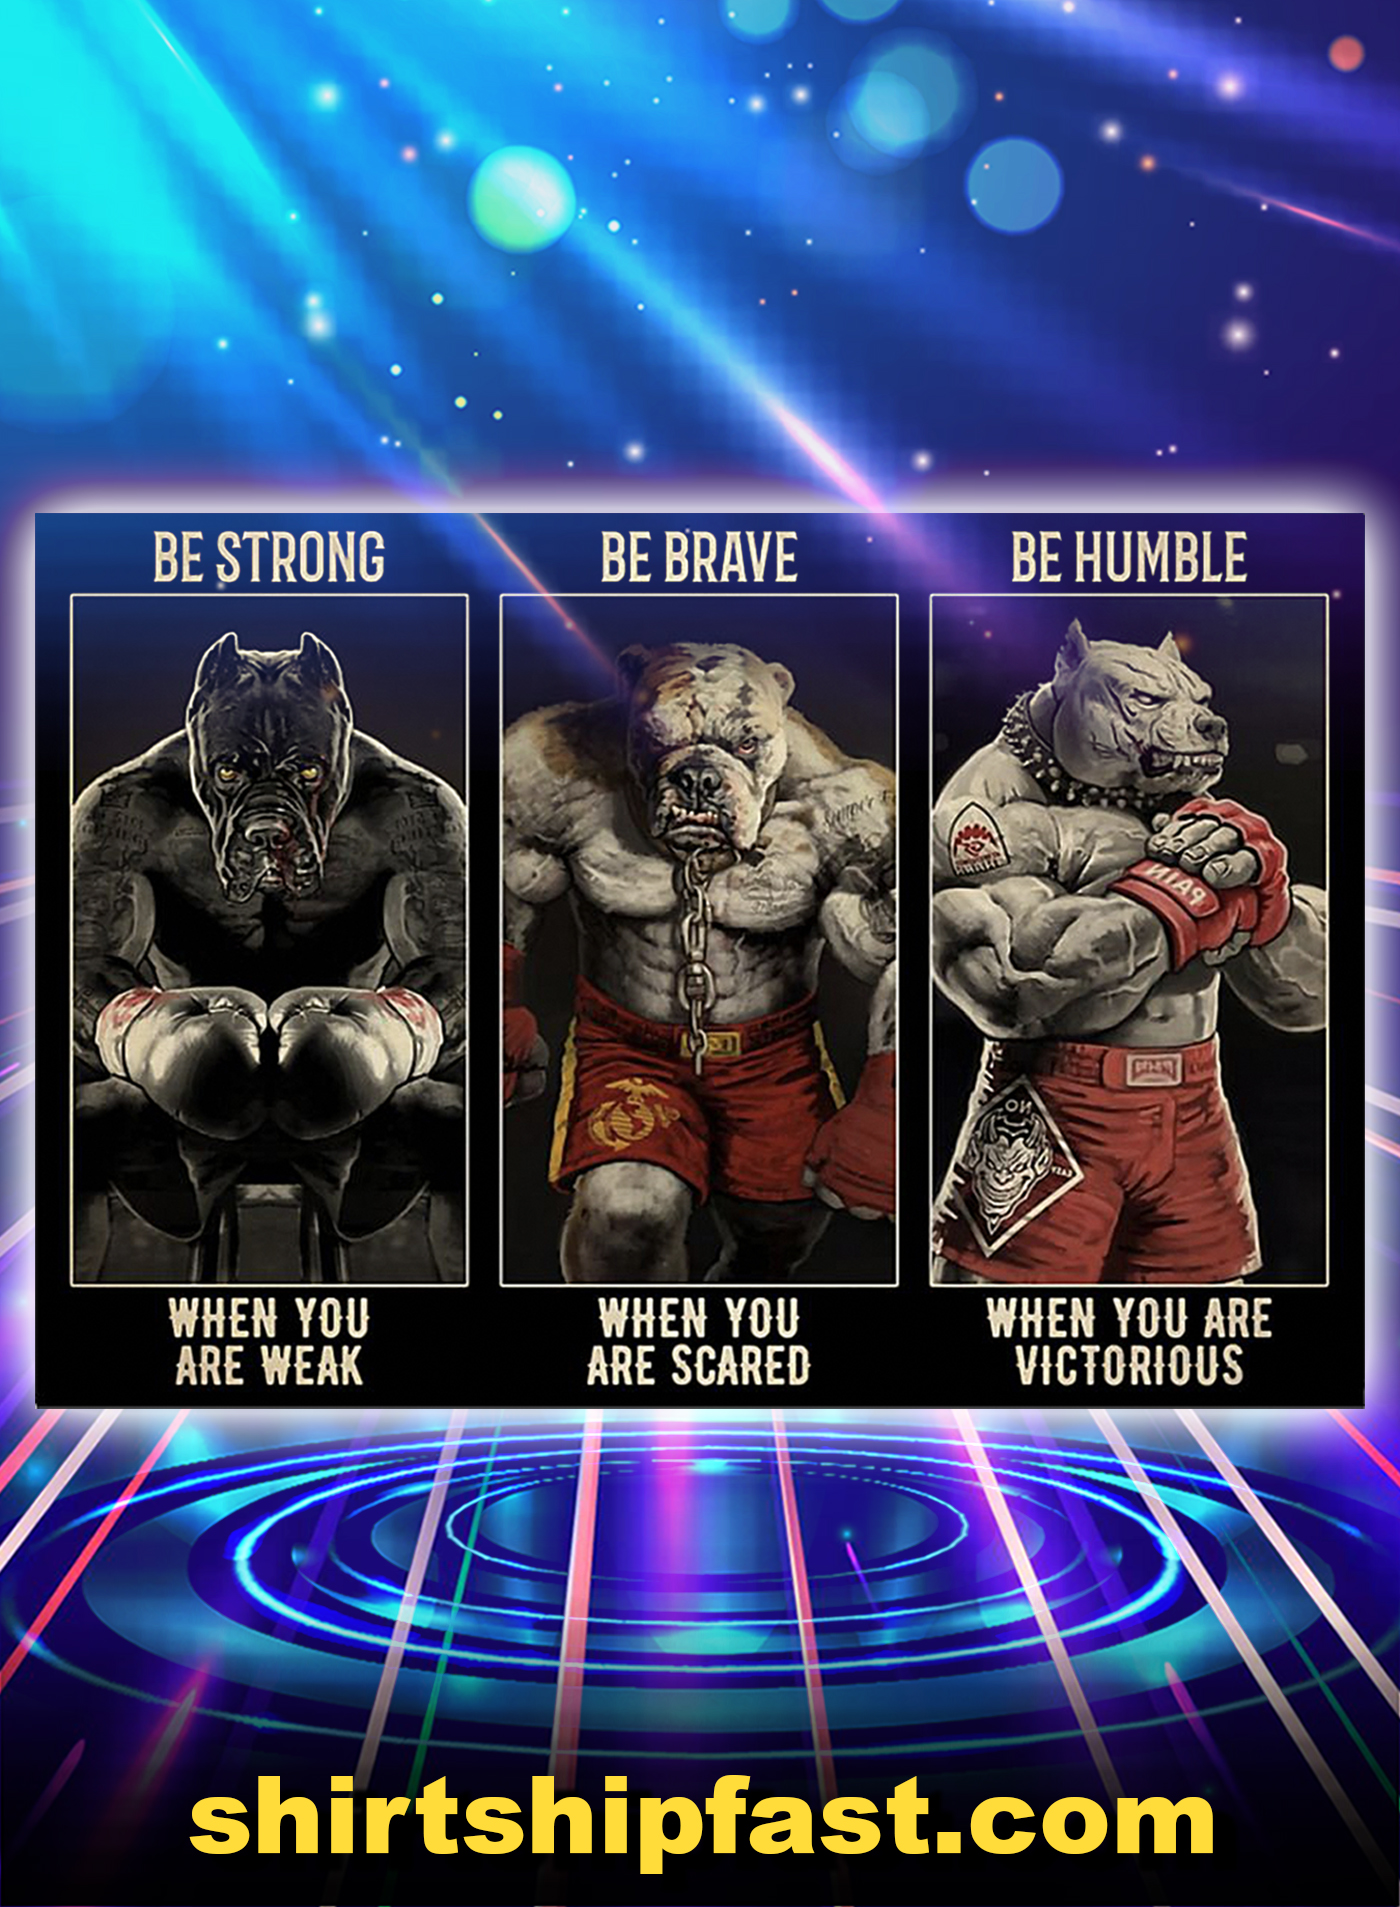 Pitbull boxing be strong be brave be humble poster - A1